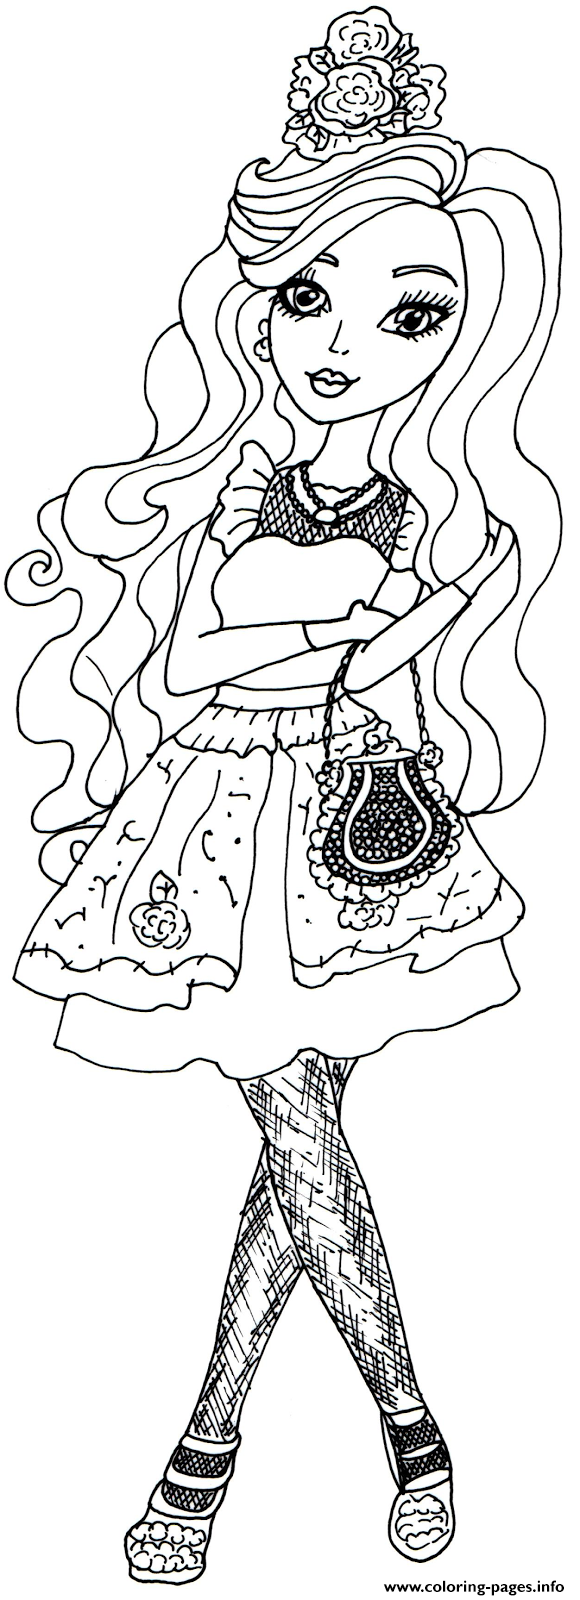 Printable coloring pages ever after high - Darling Charming Ever After High Coloring Pages